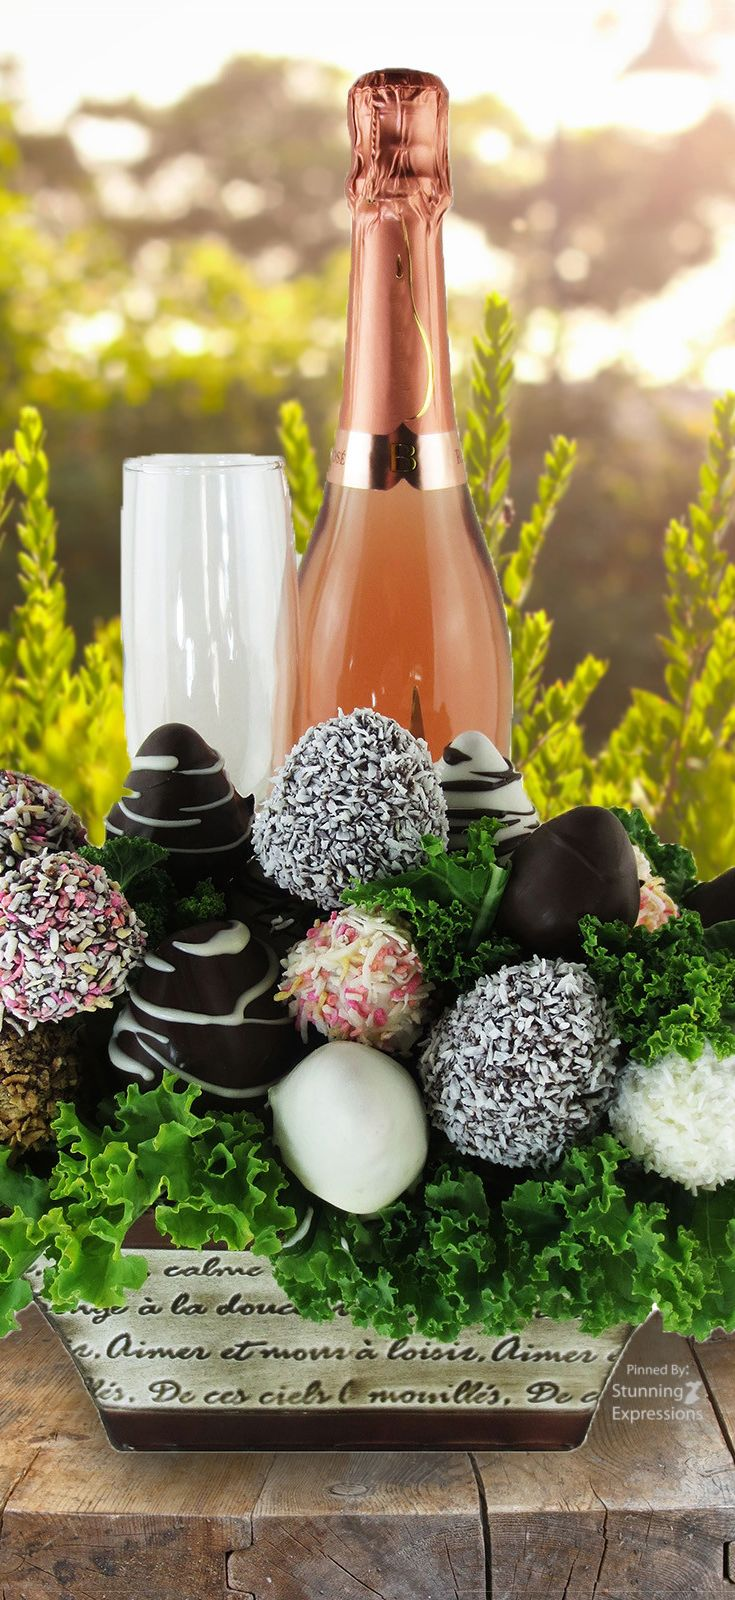 romance Champagne chocolate, Flower gift, Gift baskets